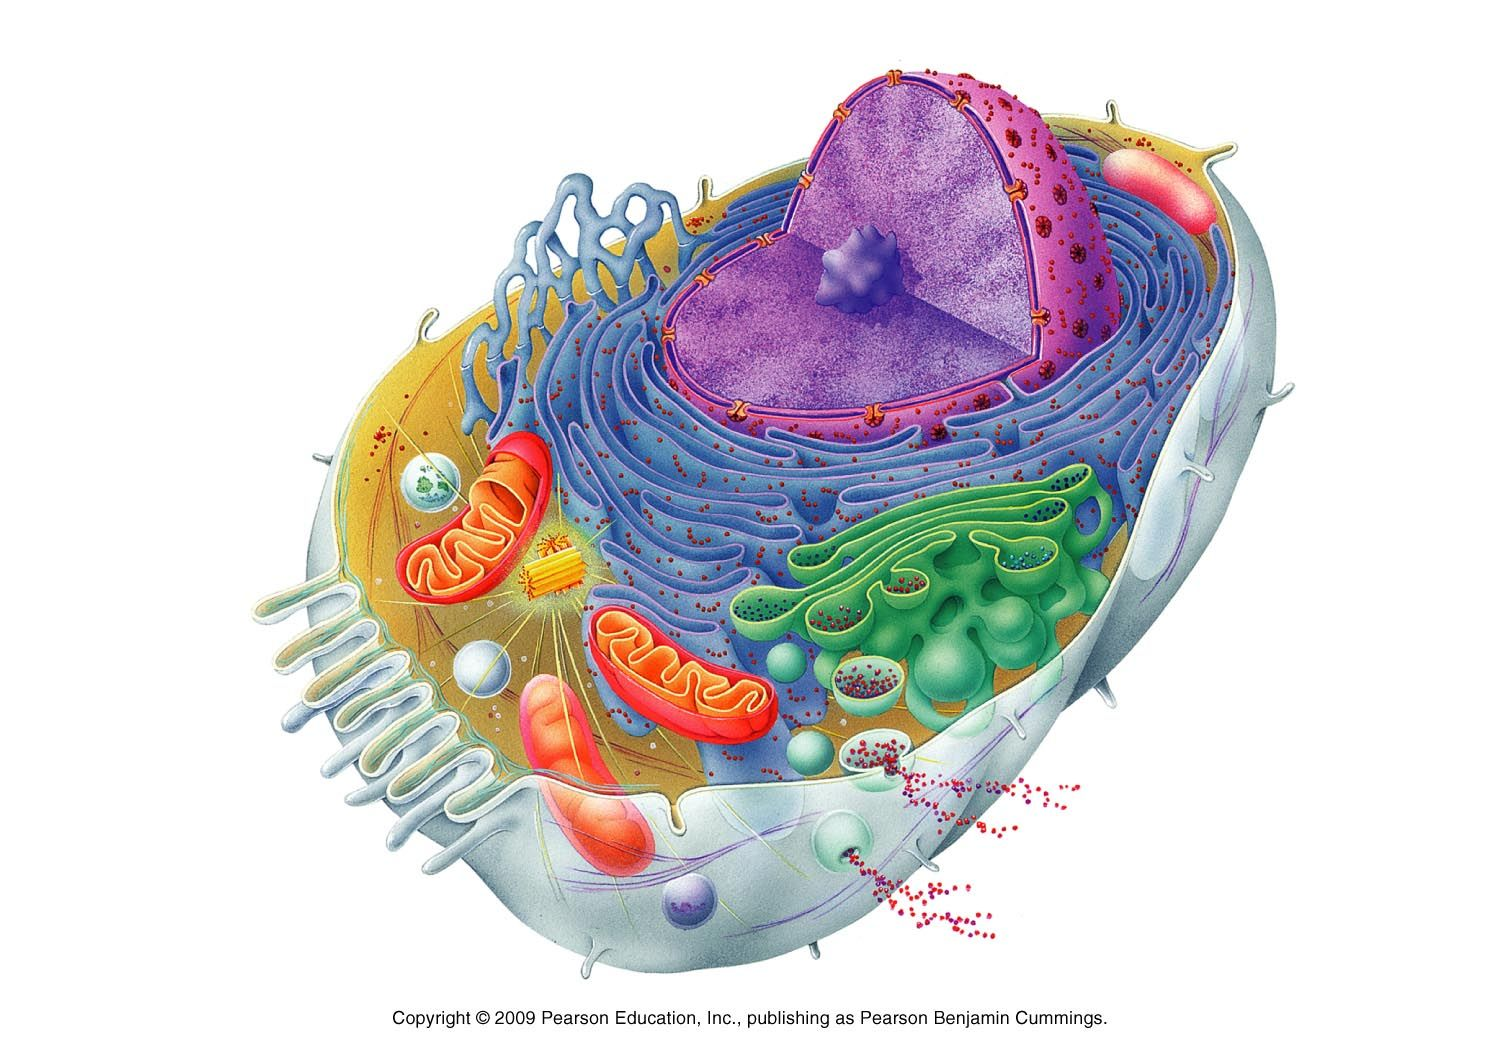 Biology Pictures Cell Structure Printable Human Anatomy And Physiology Human Cell Diagram Anatomy And Physiology